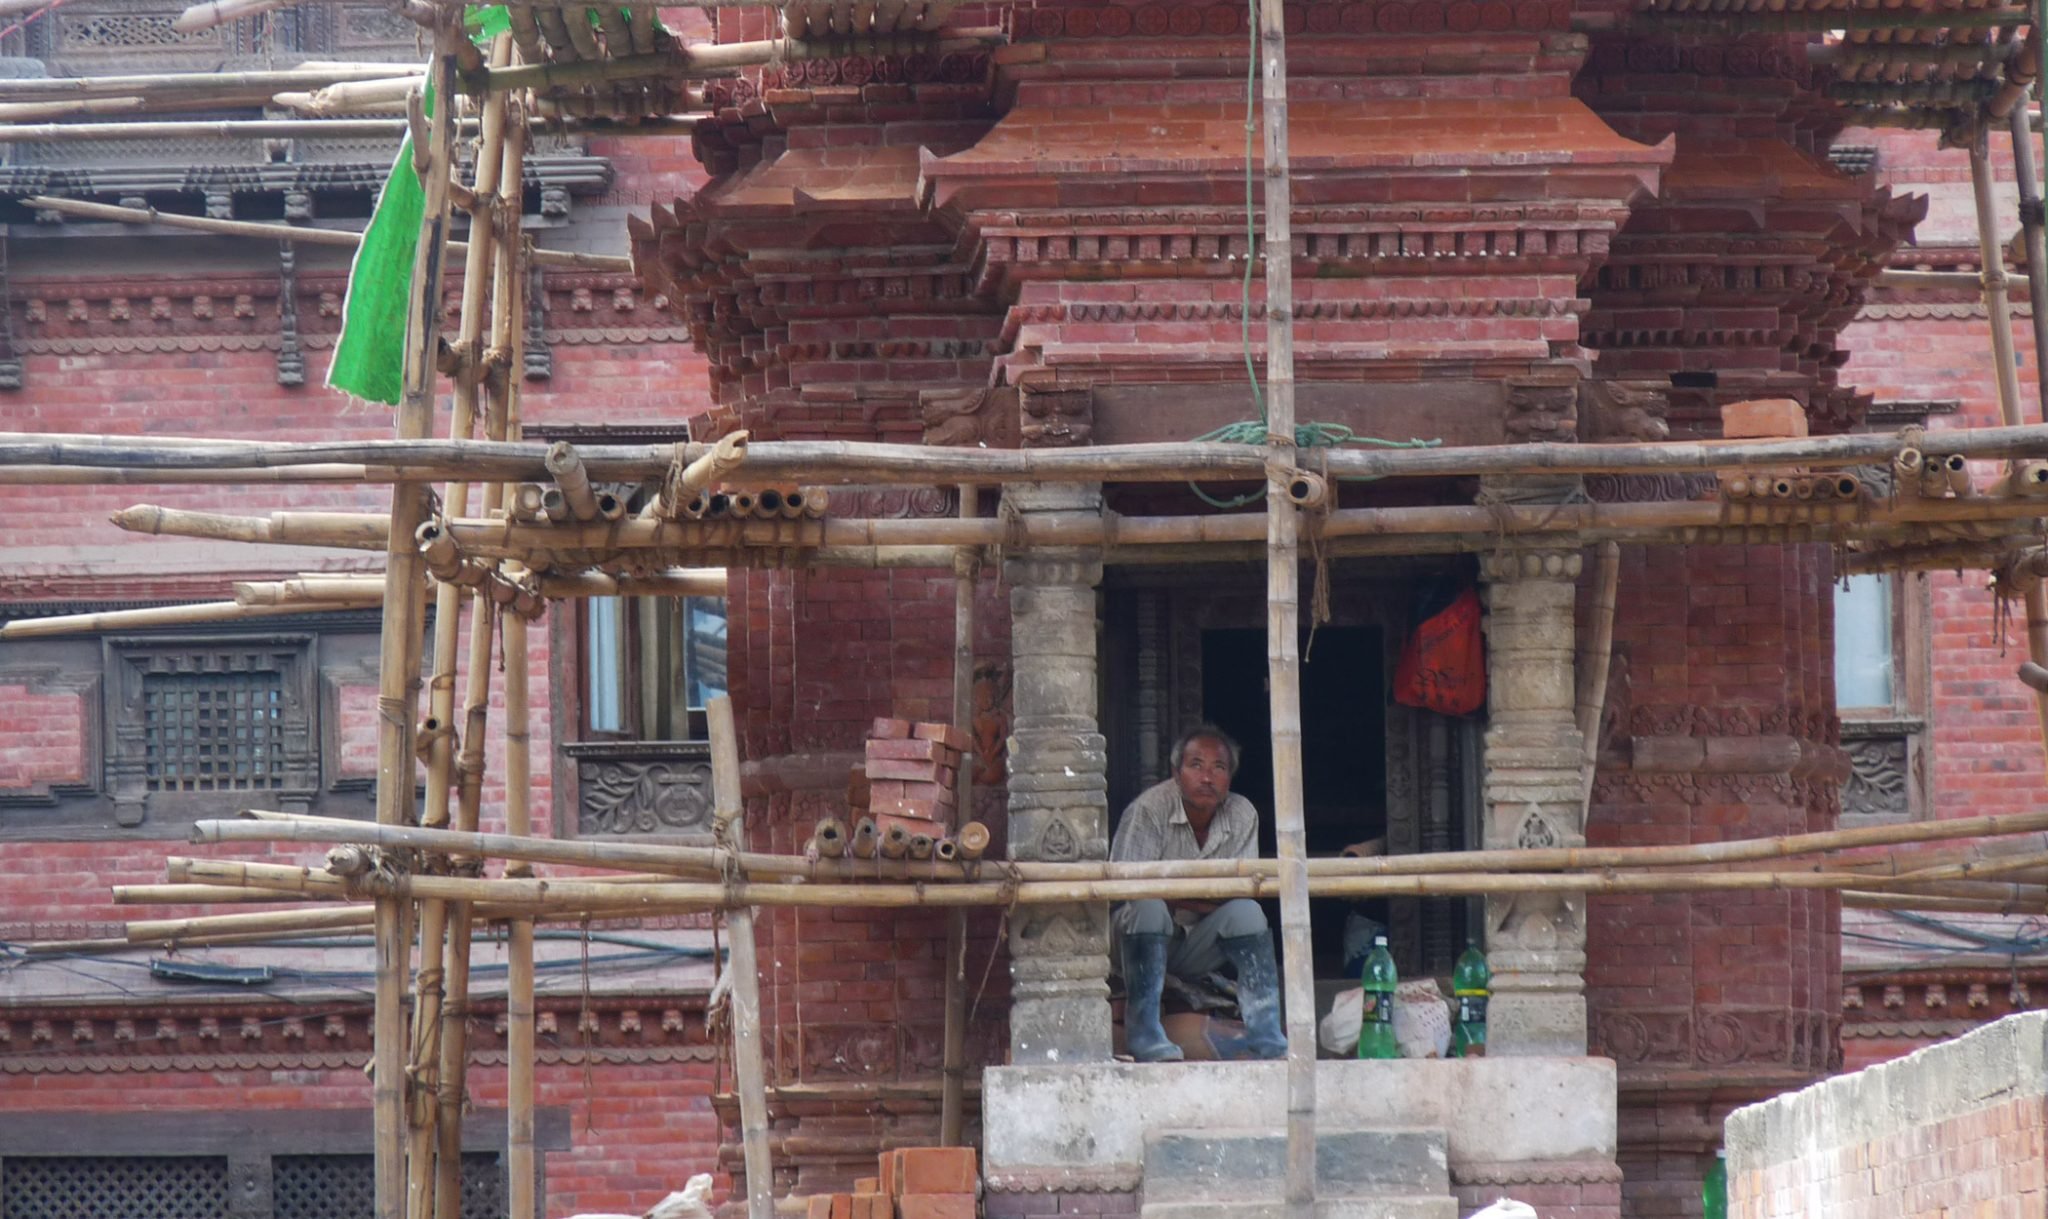 9 months after the quake, a UNESCO heritage site awaits reconstruction in Nepal